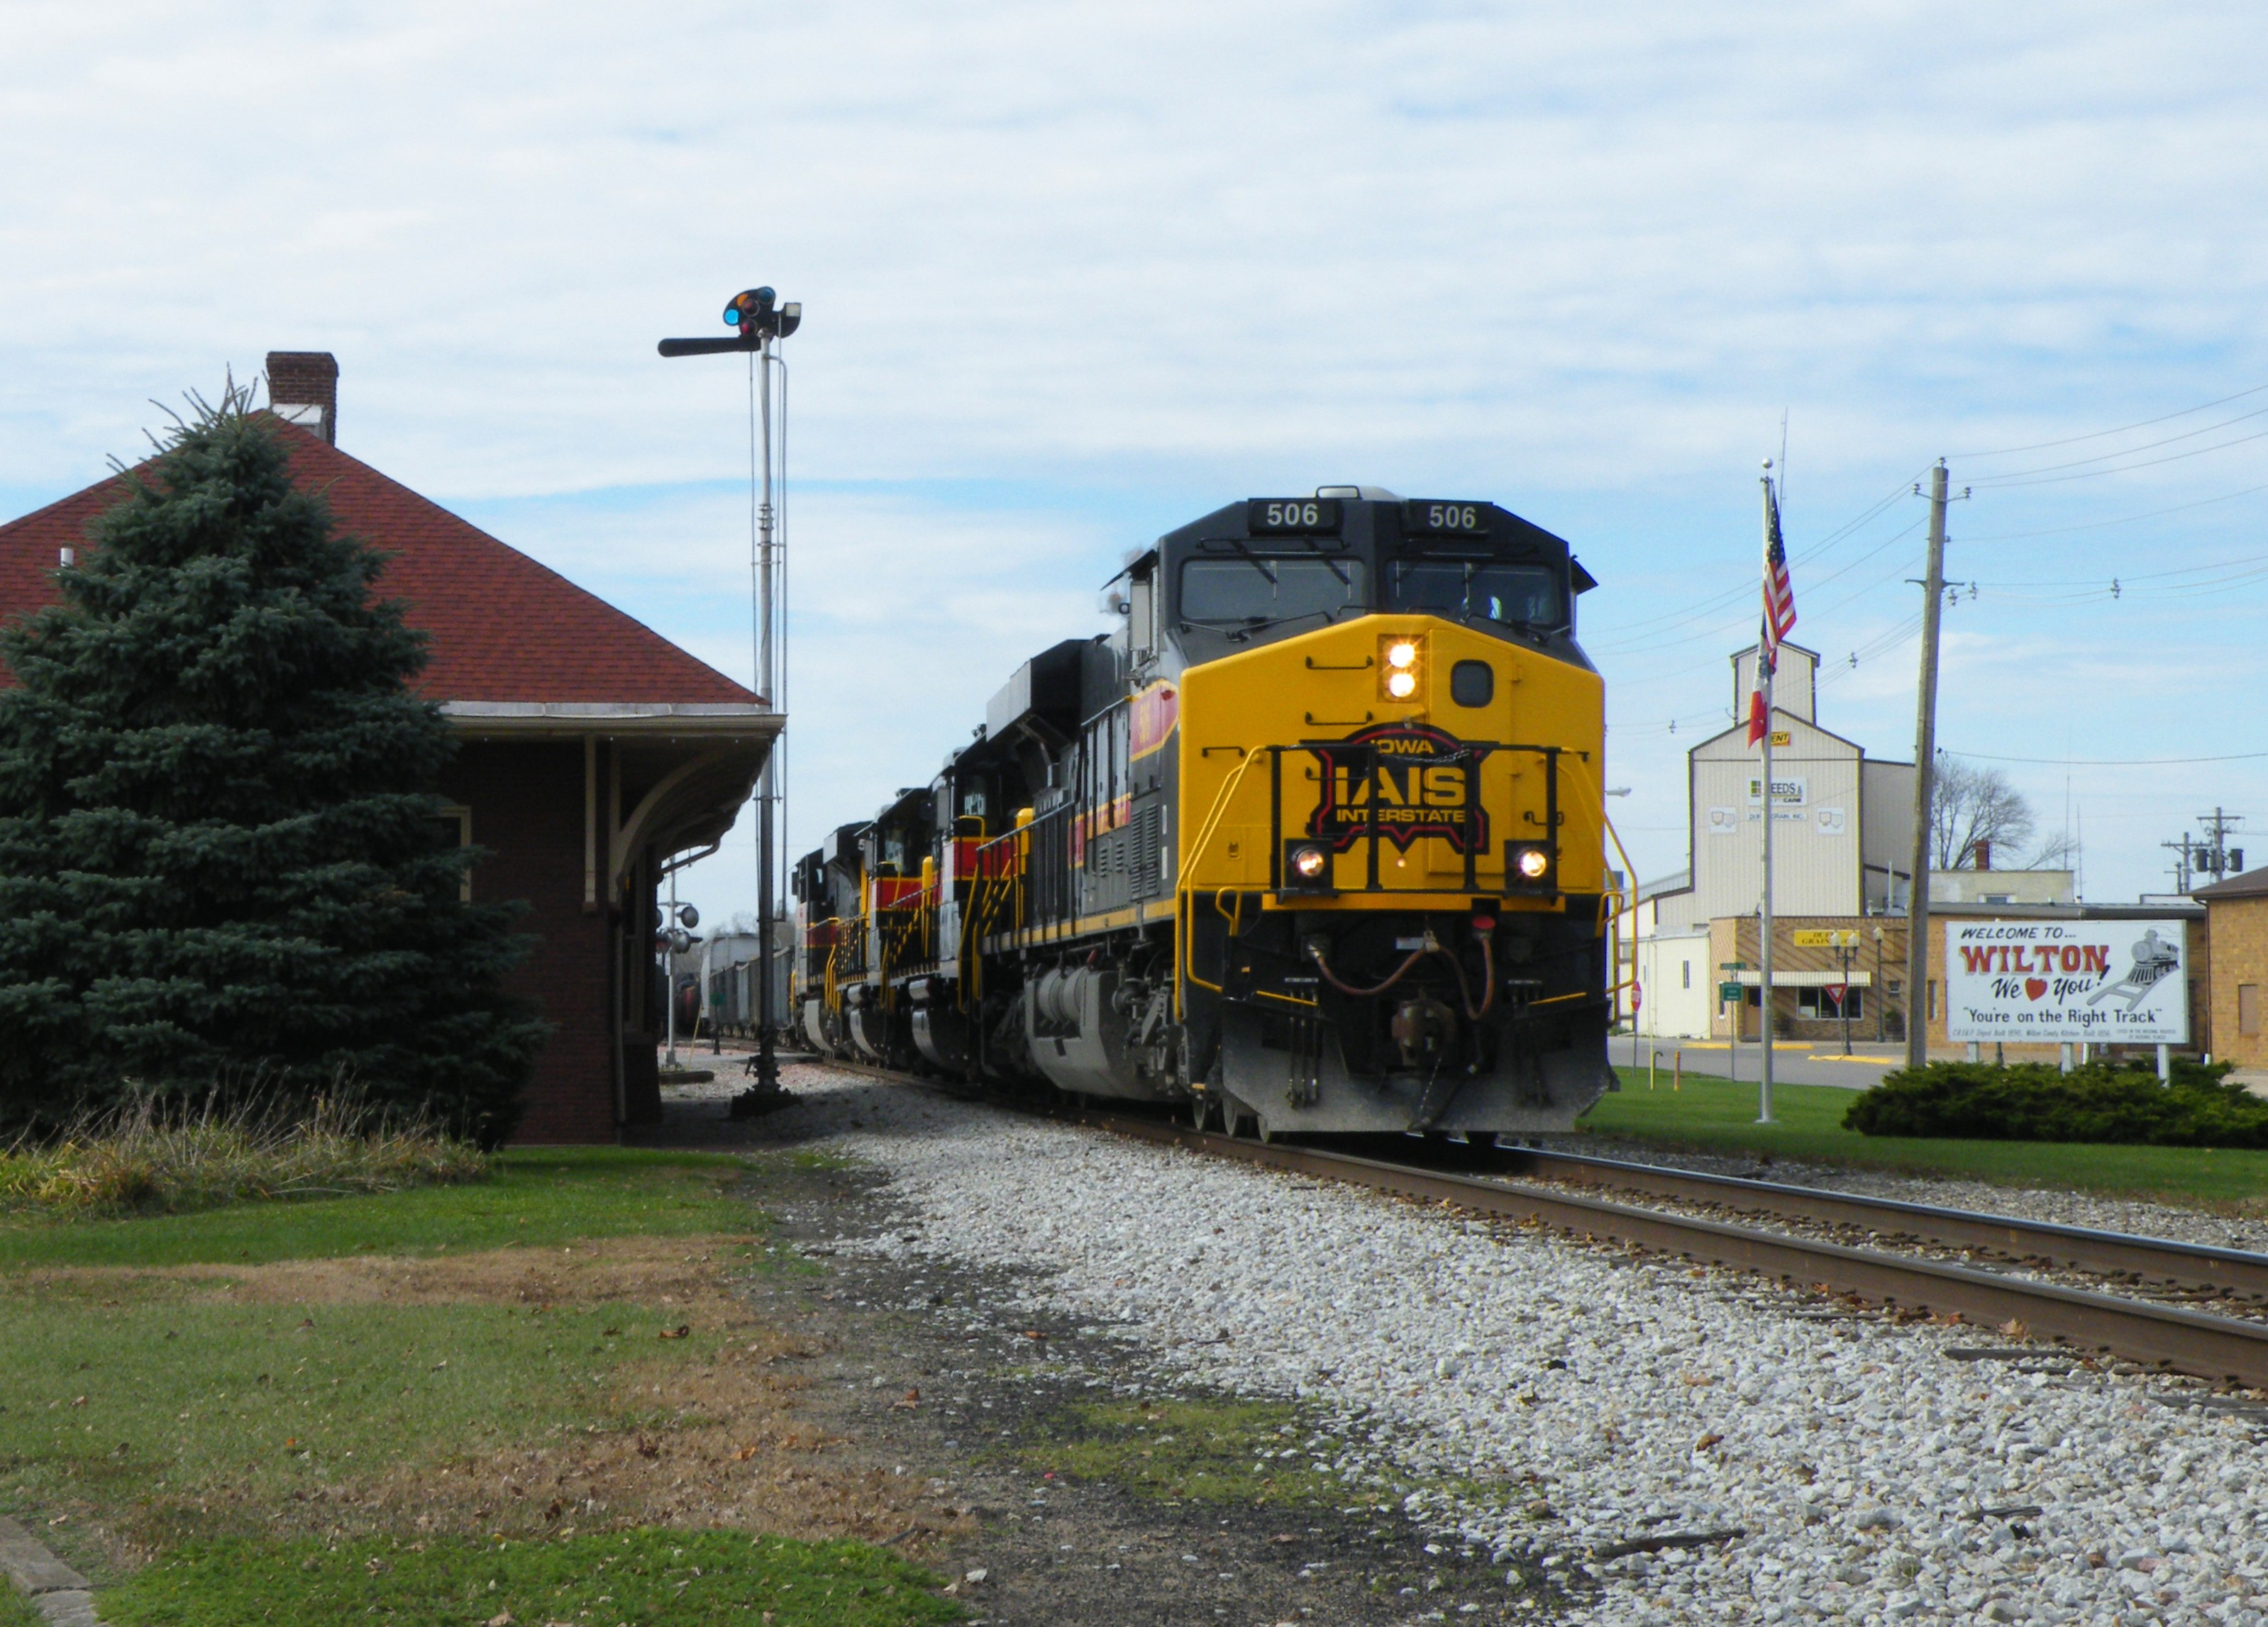 Rollin' right along, 506 makes great time by the depot in Wilton, IA.